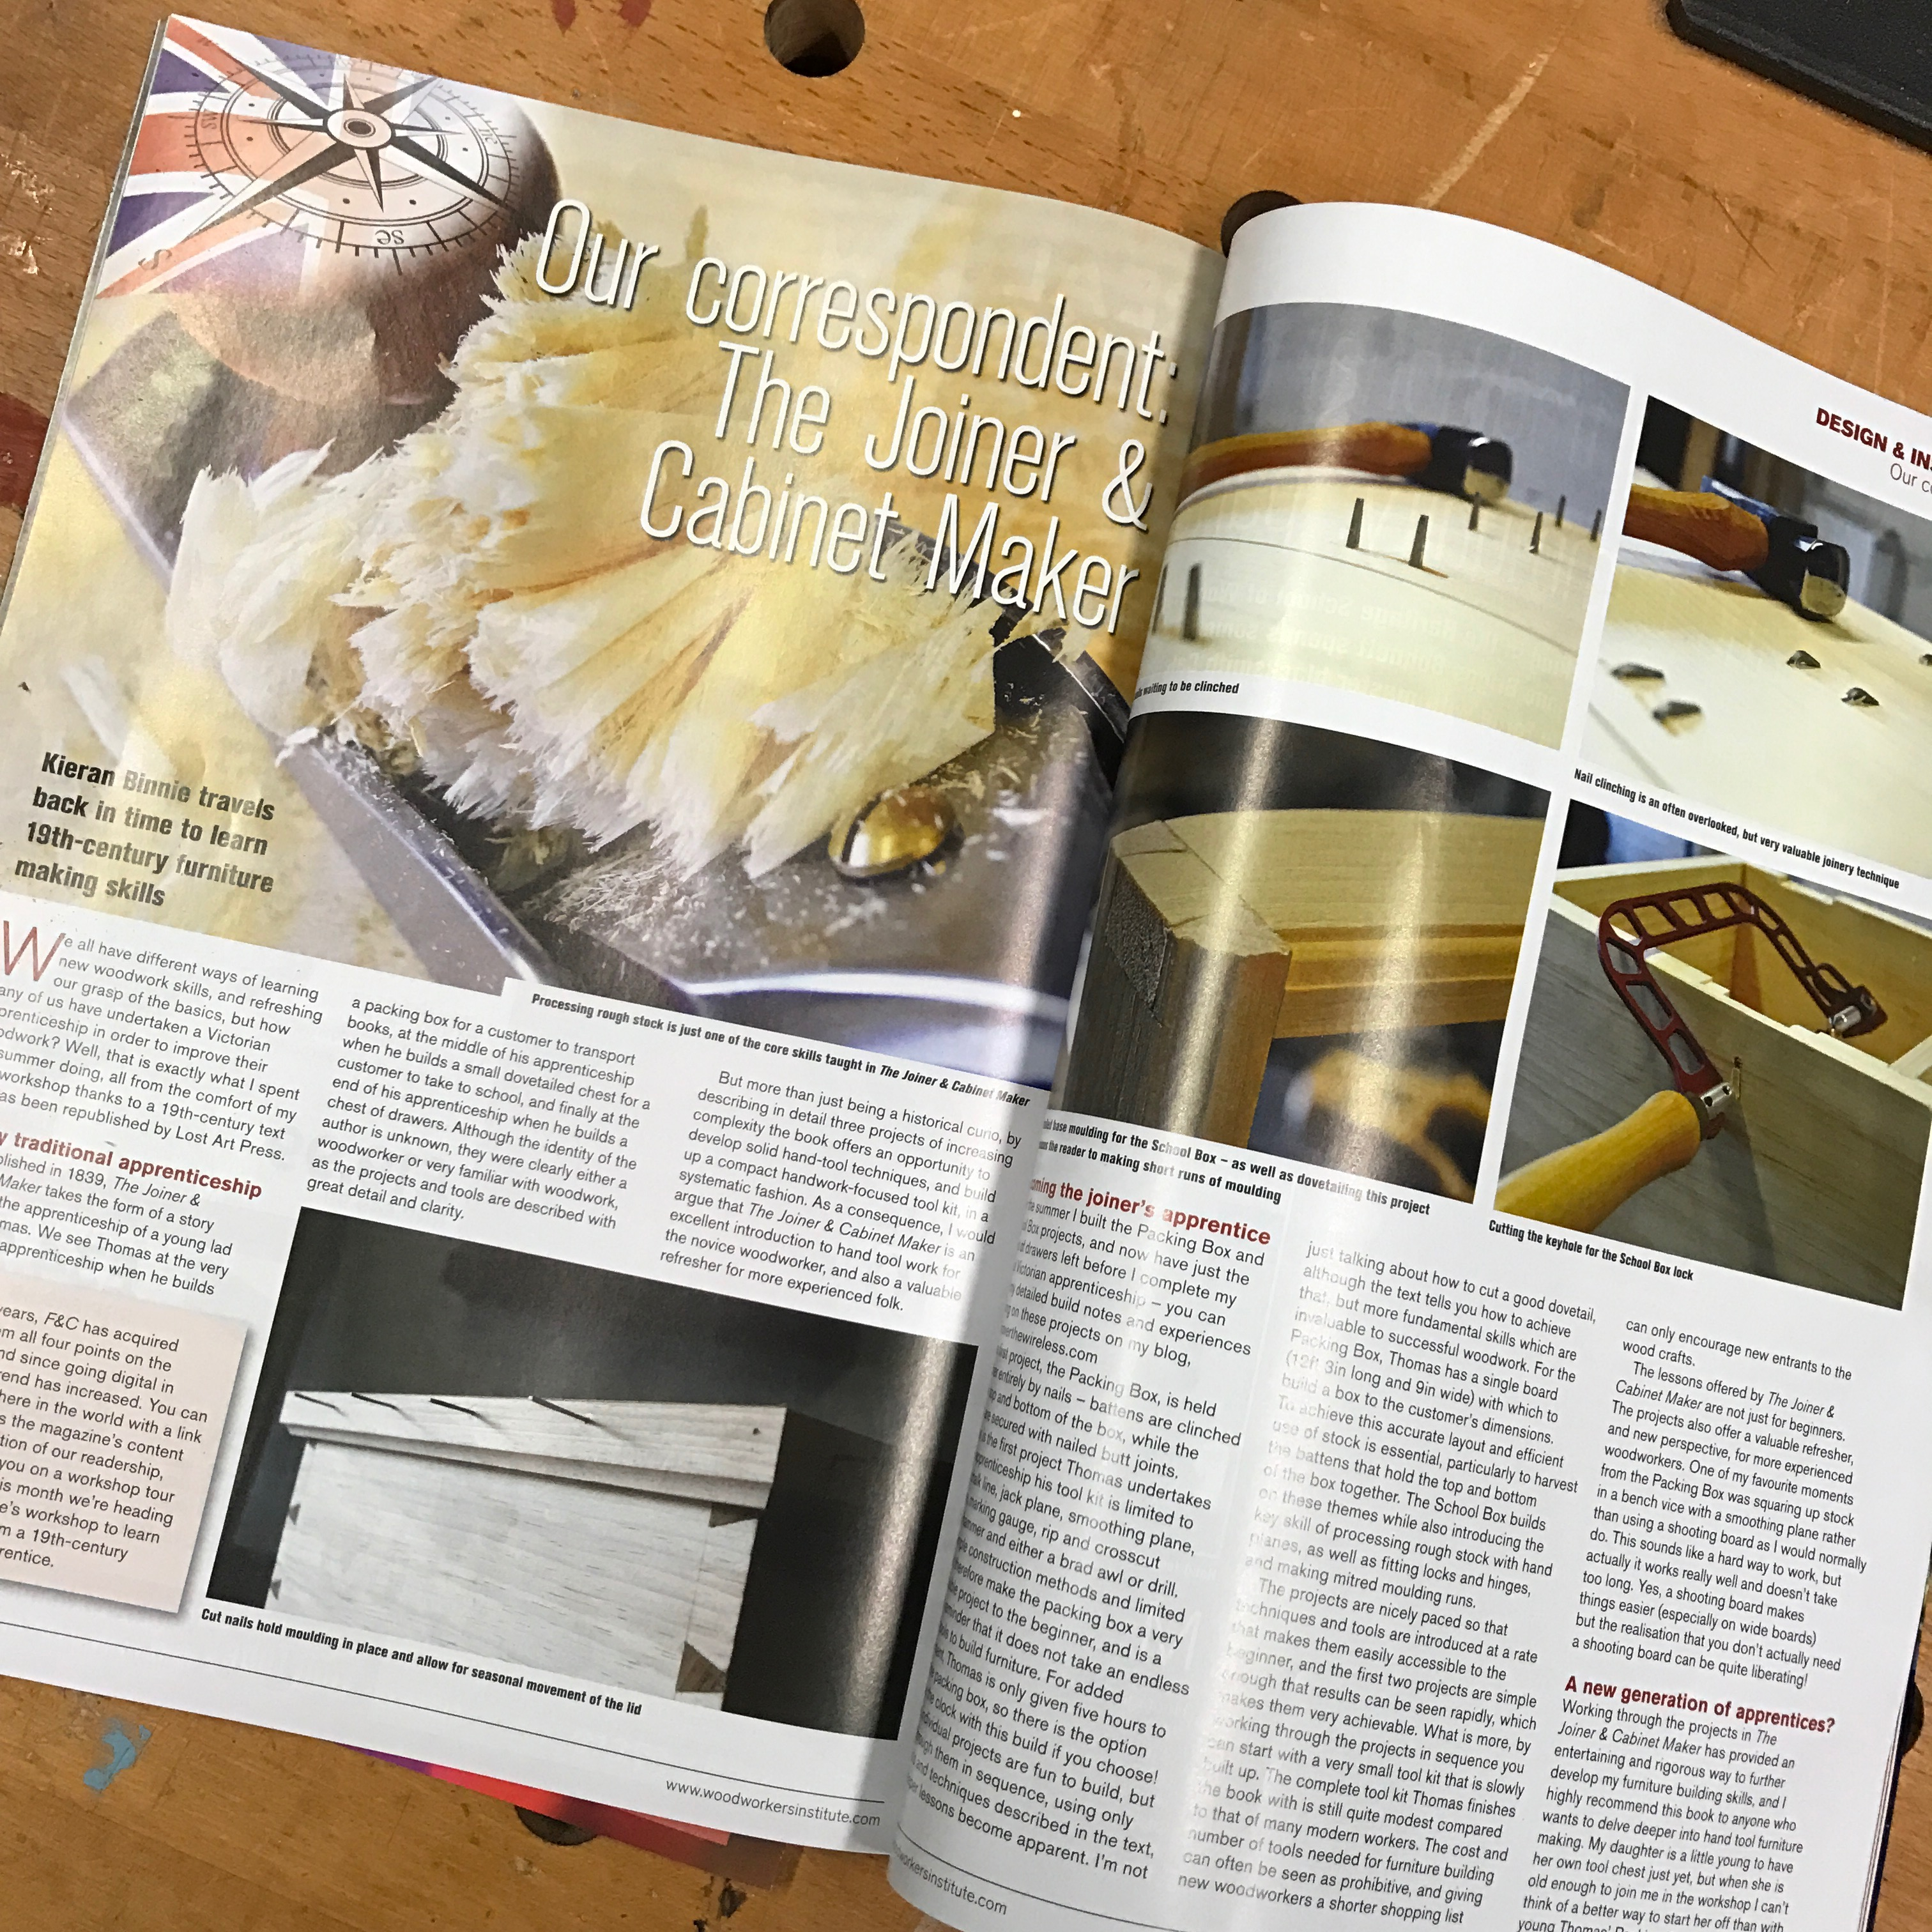 The Joiner & Cabinet Maker, in print | Over the Wireless